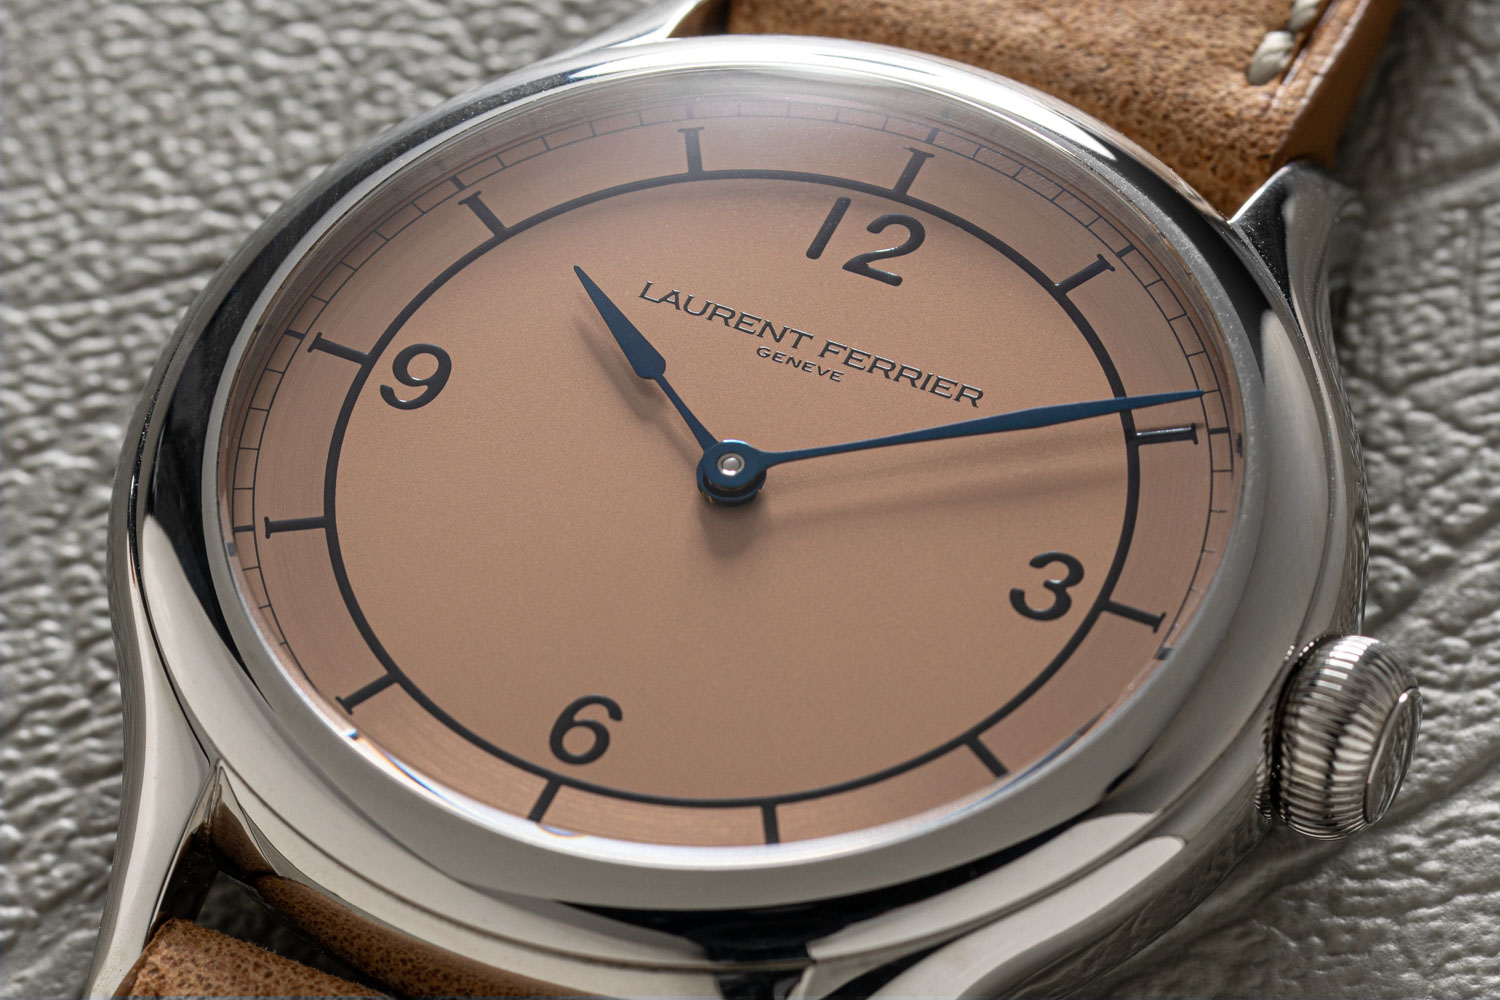 The Laurent Ferrier Steel Galet Micro-Rotor Salmon Dial (1-of-1) features a salmon colored dial with a brushed finish on the perimeter of the dial (©Revolution)